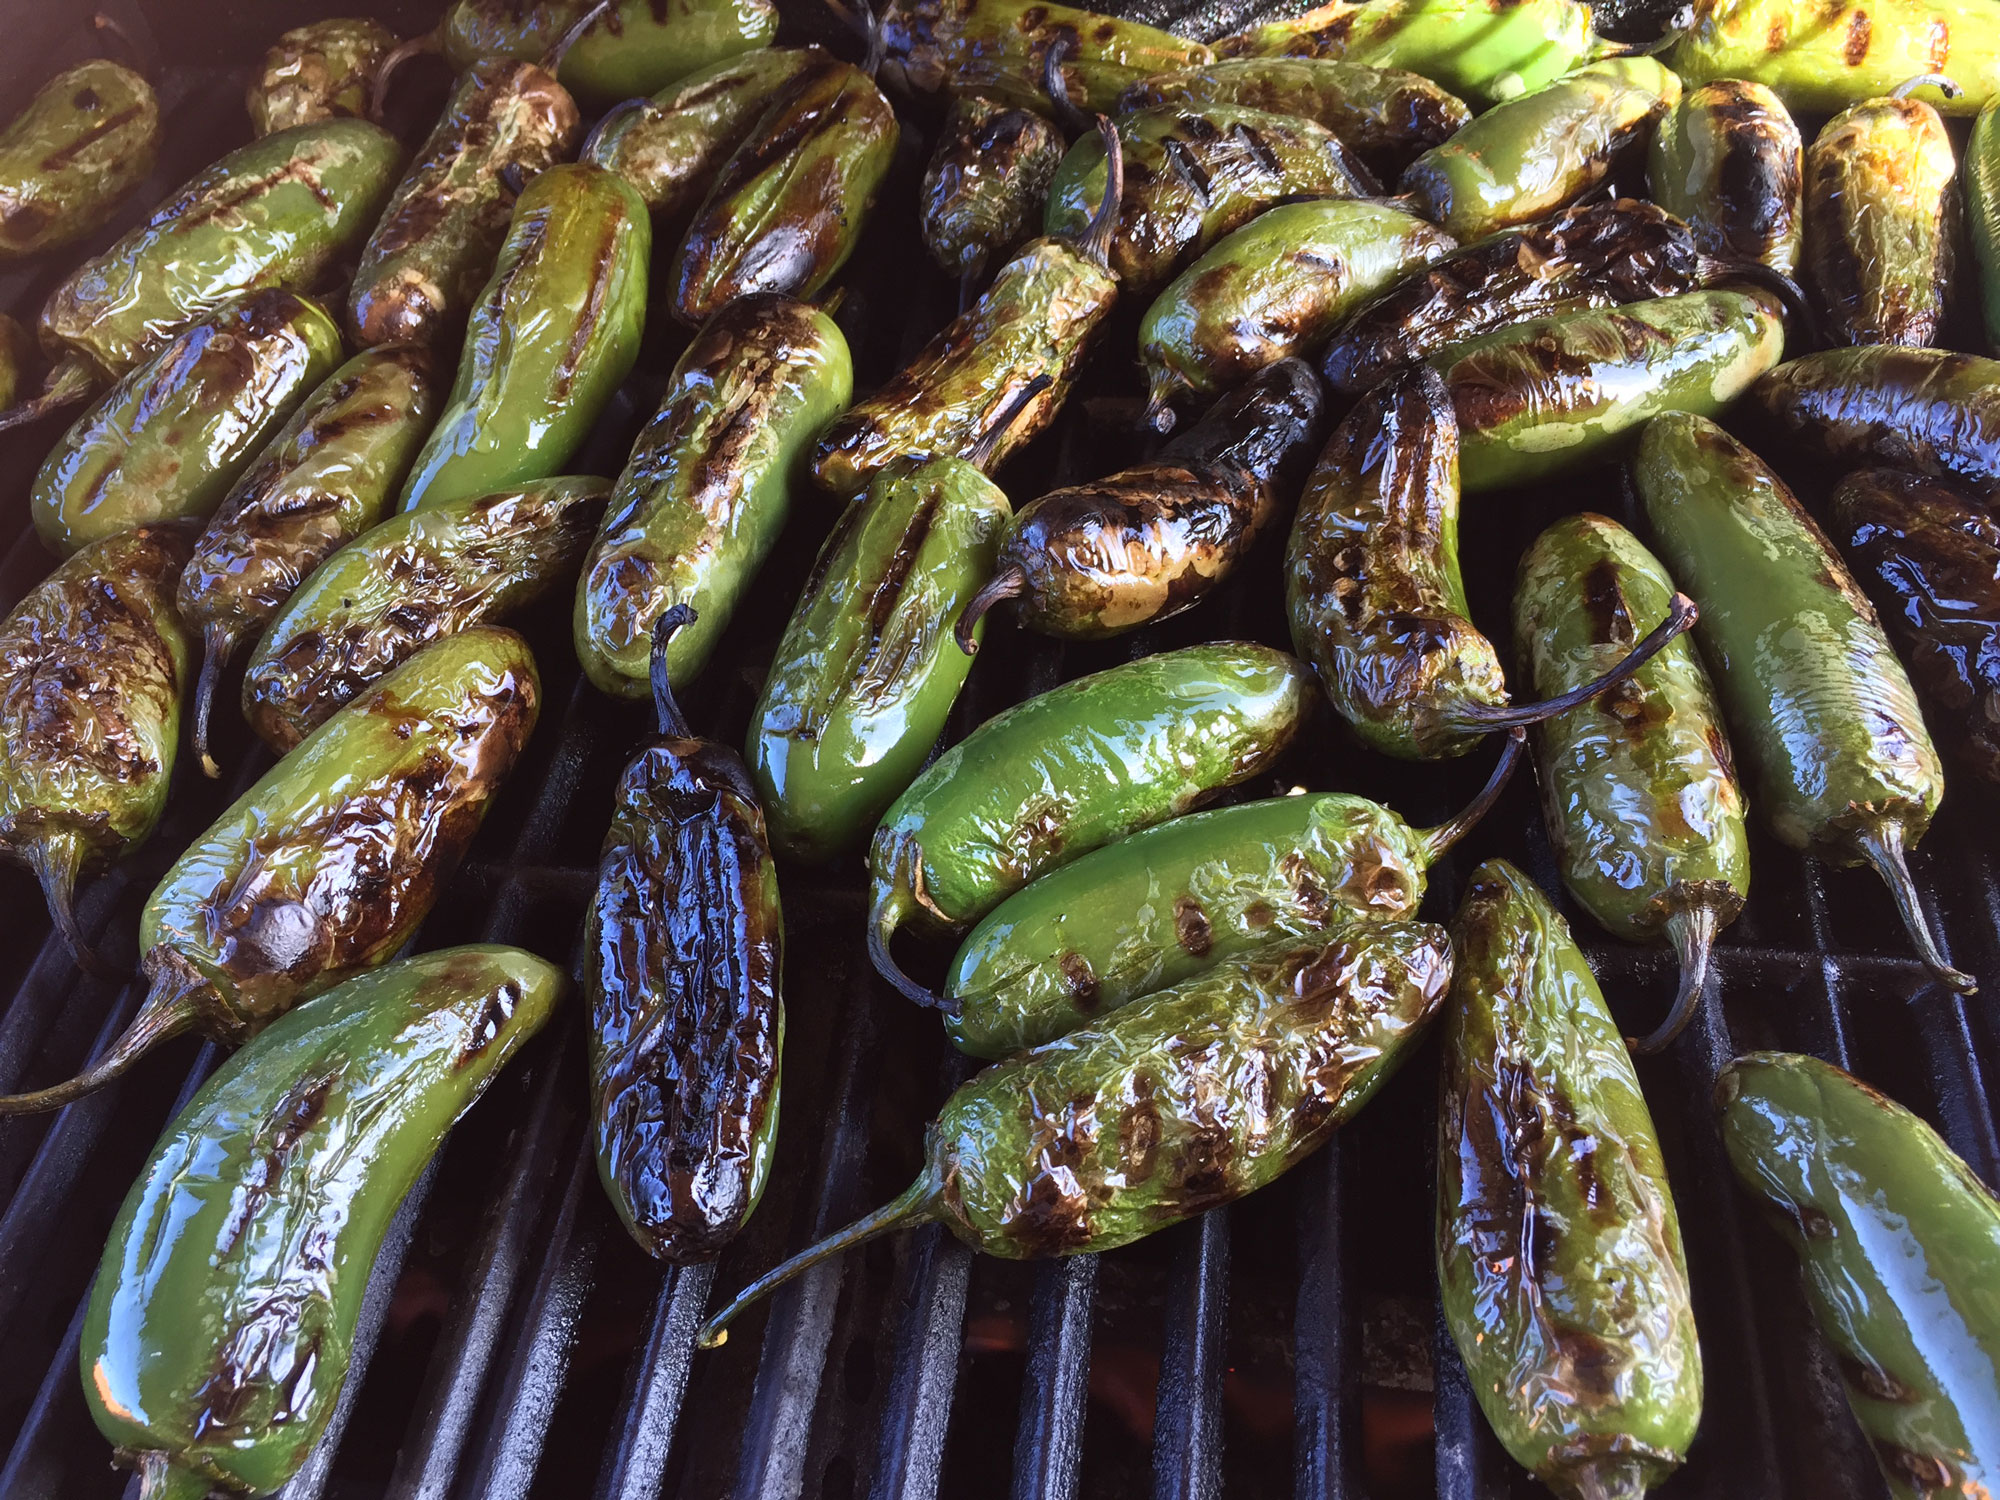 Our Jalapenos are always freshly roasted